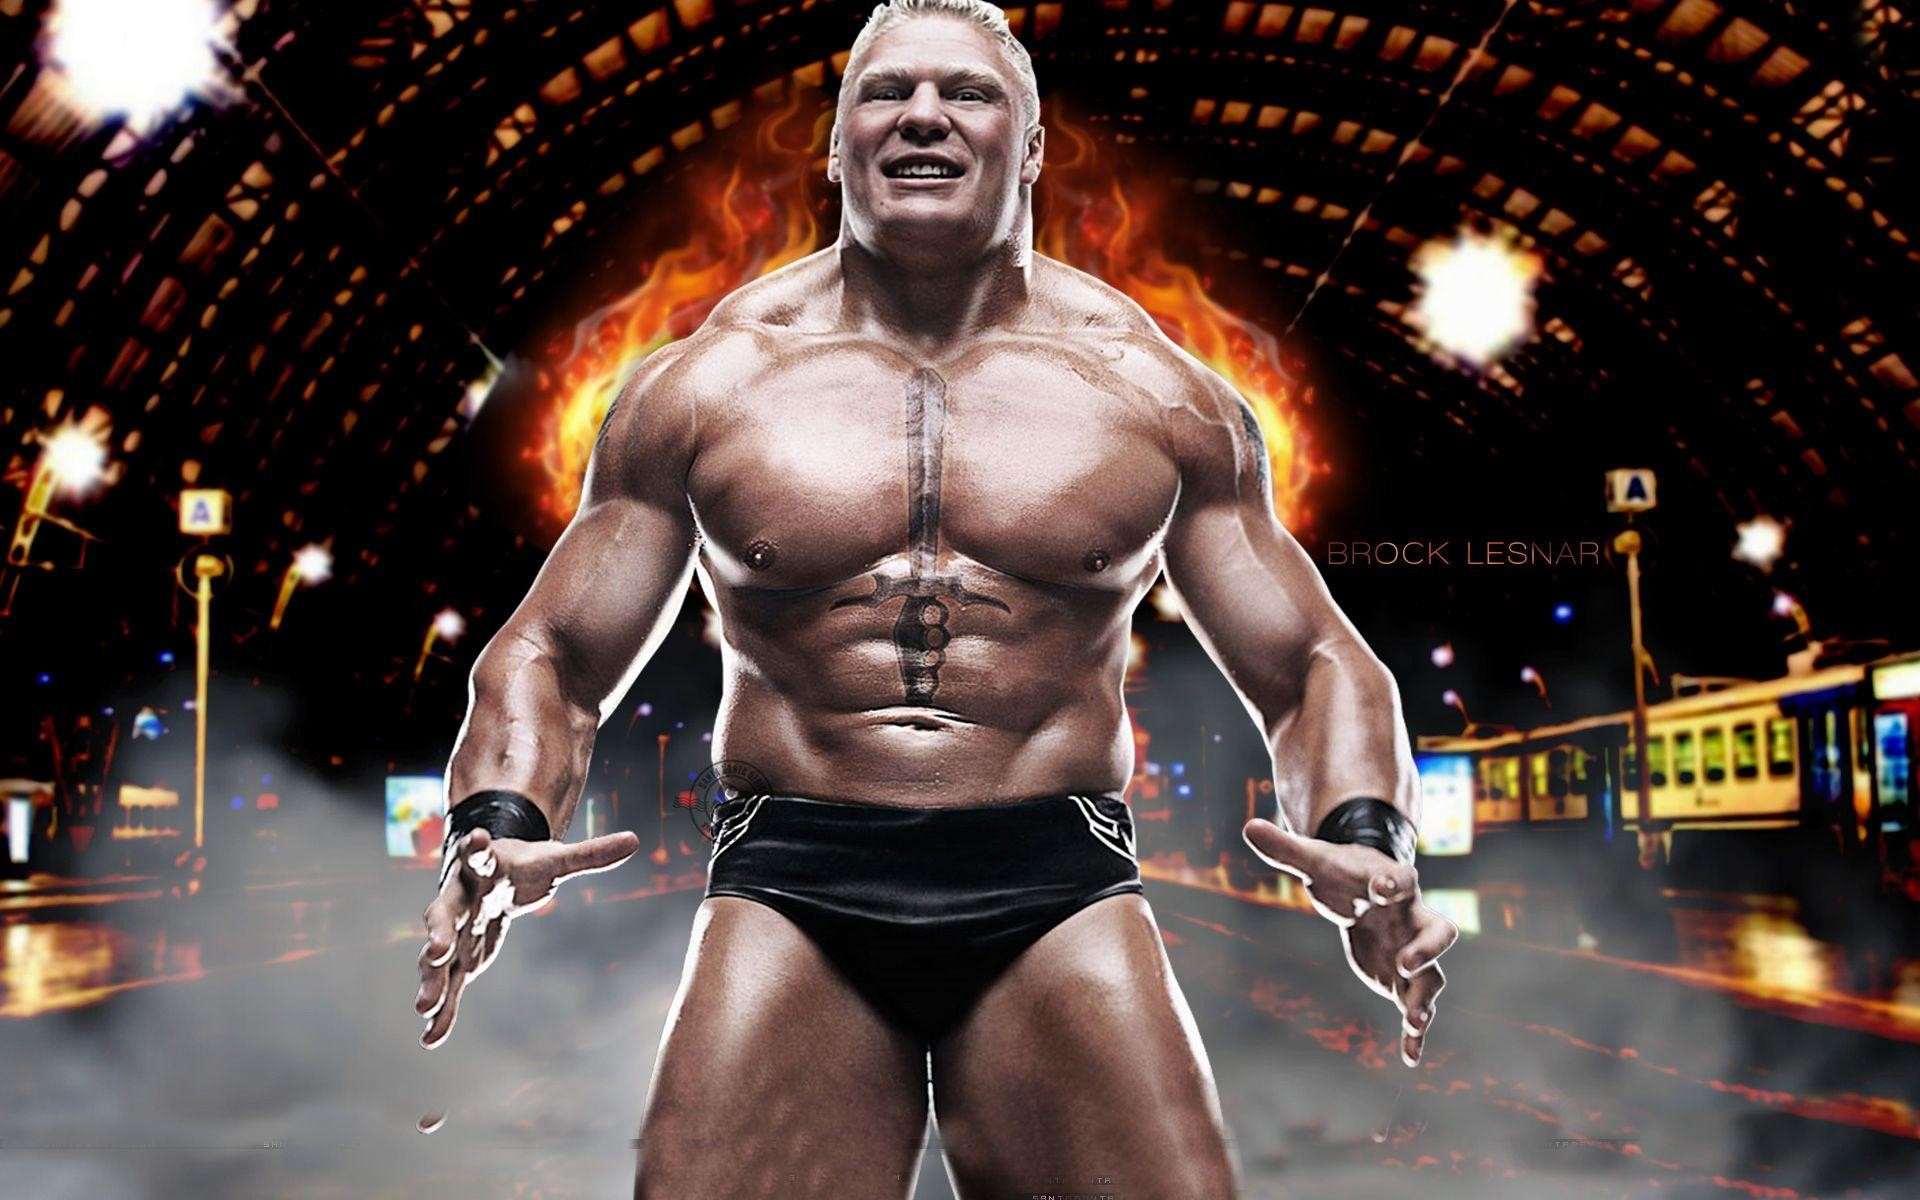 1920x1200 Brock Lesnar WWE 2016 Wallpapers 1024x768